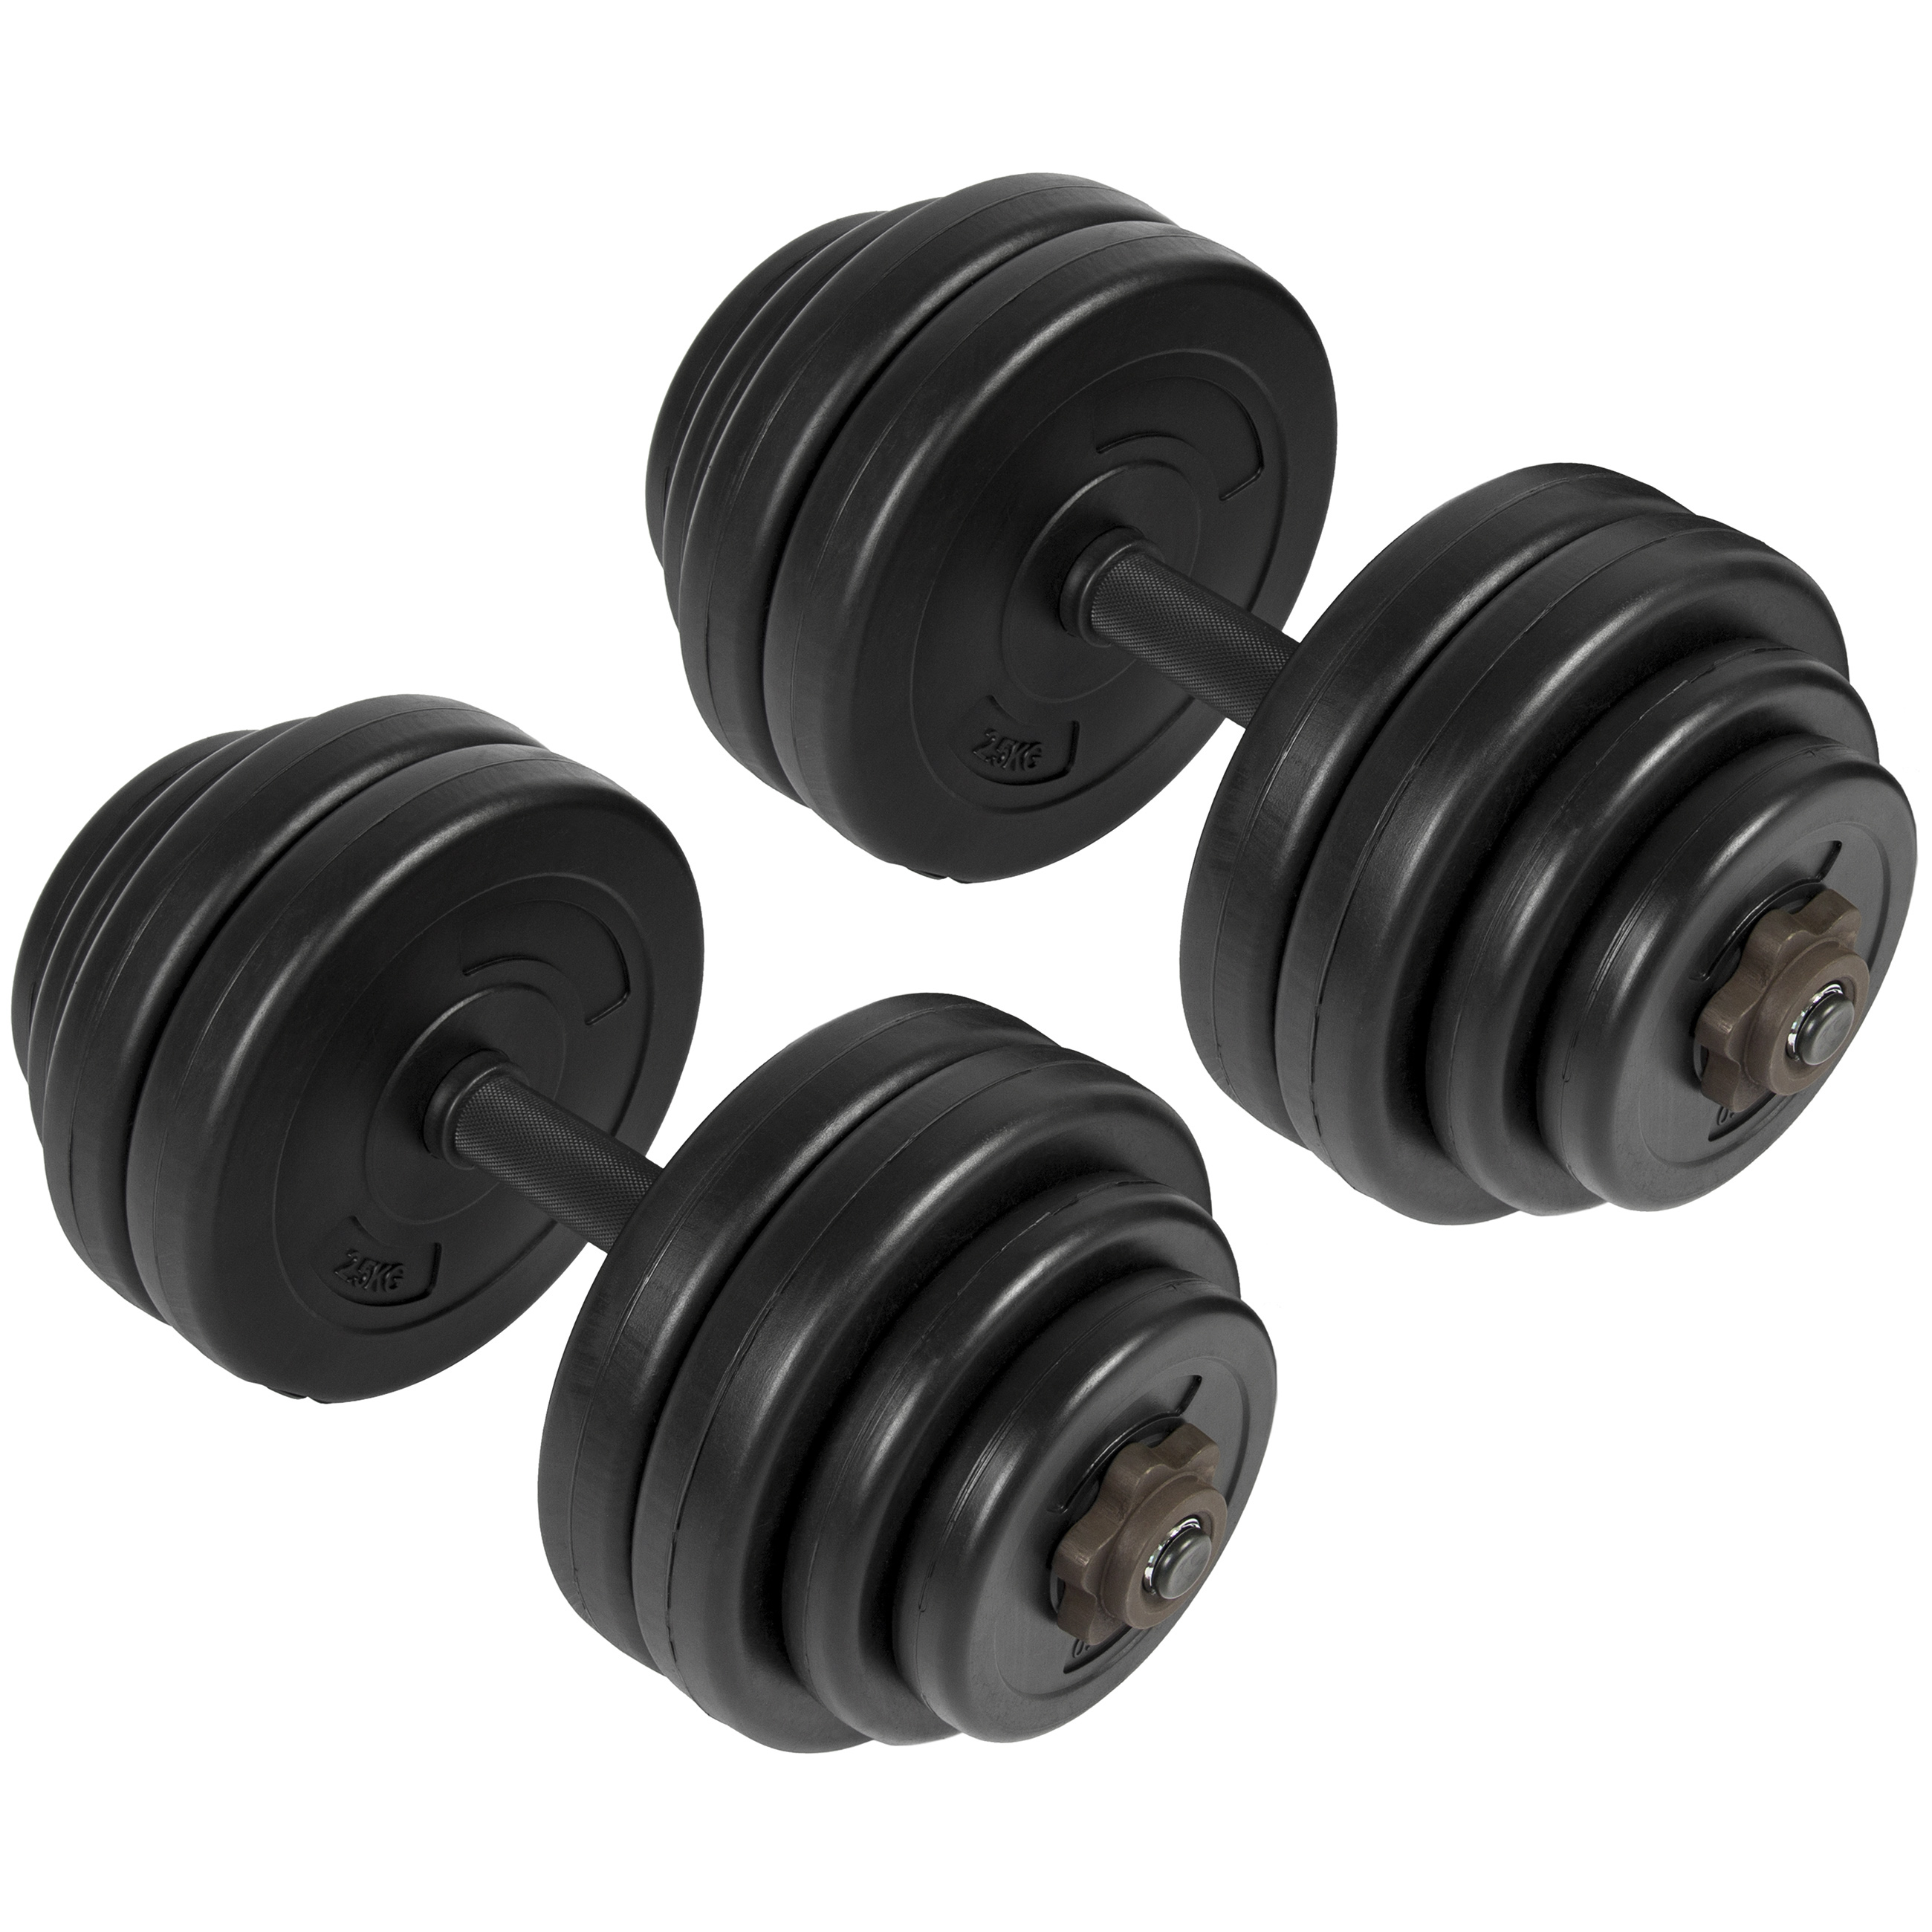 Best Choice Products 64lb Gym Workout Dumbbell Weight Barbell Set w/ Adjustable Caps - Black